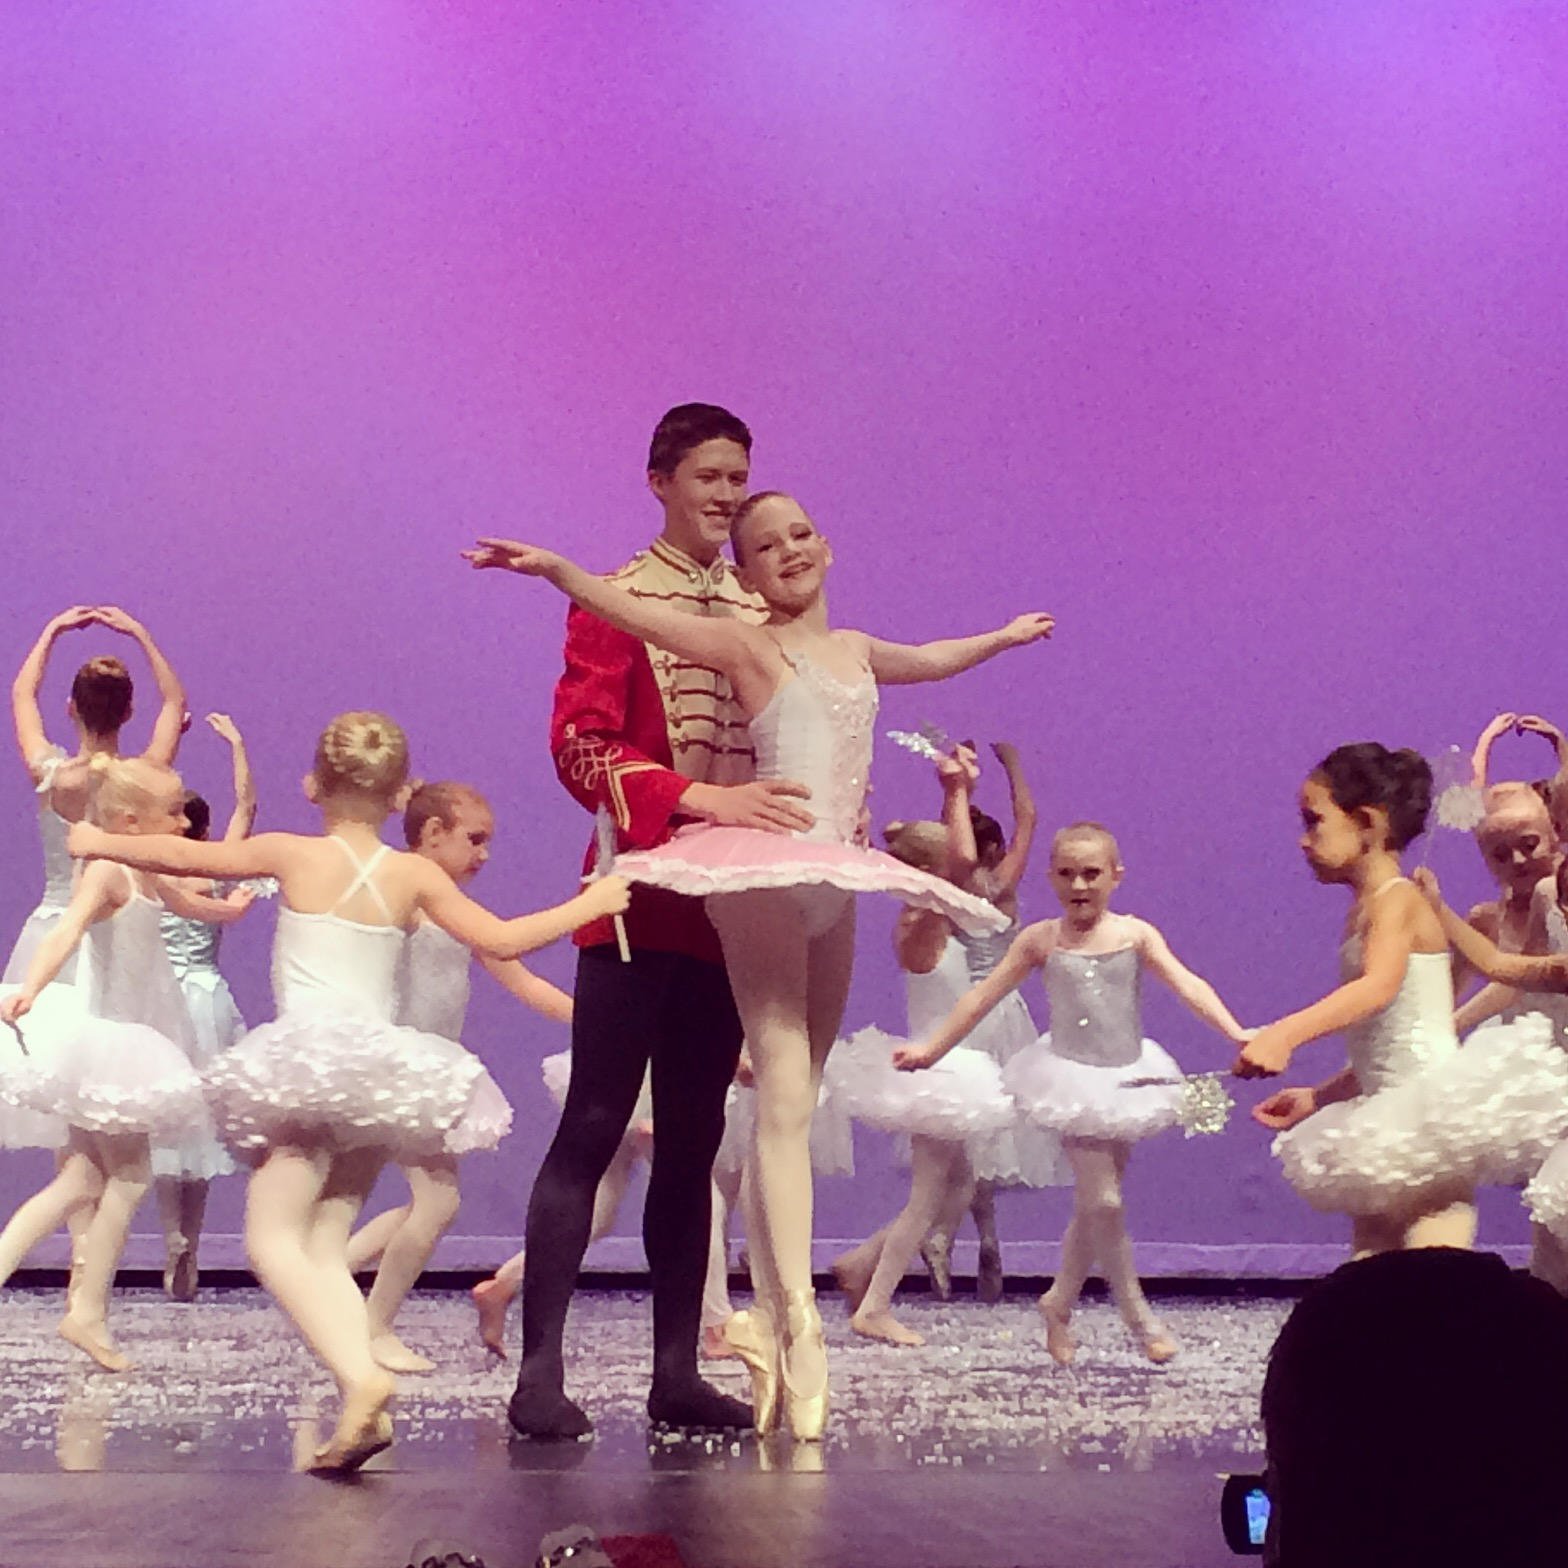 The Nutcracker, staring my niece Dec. 6, 2014 280